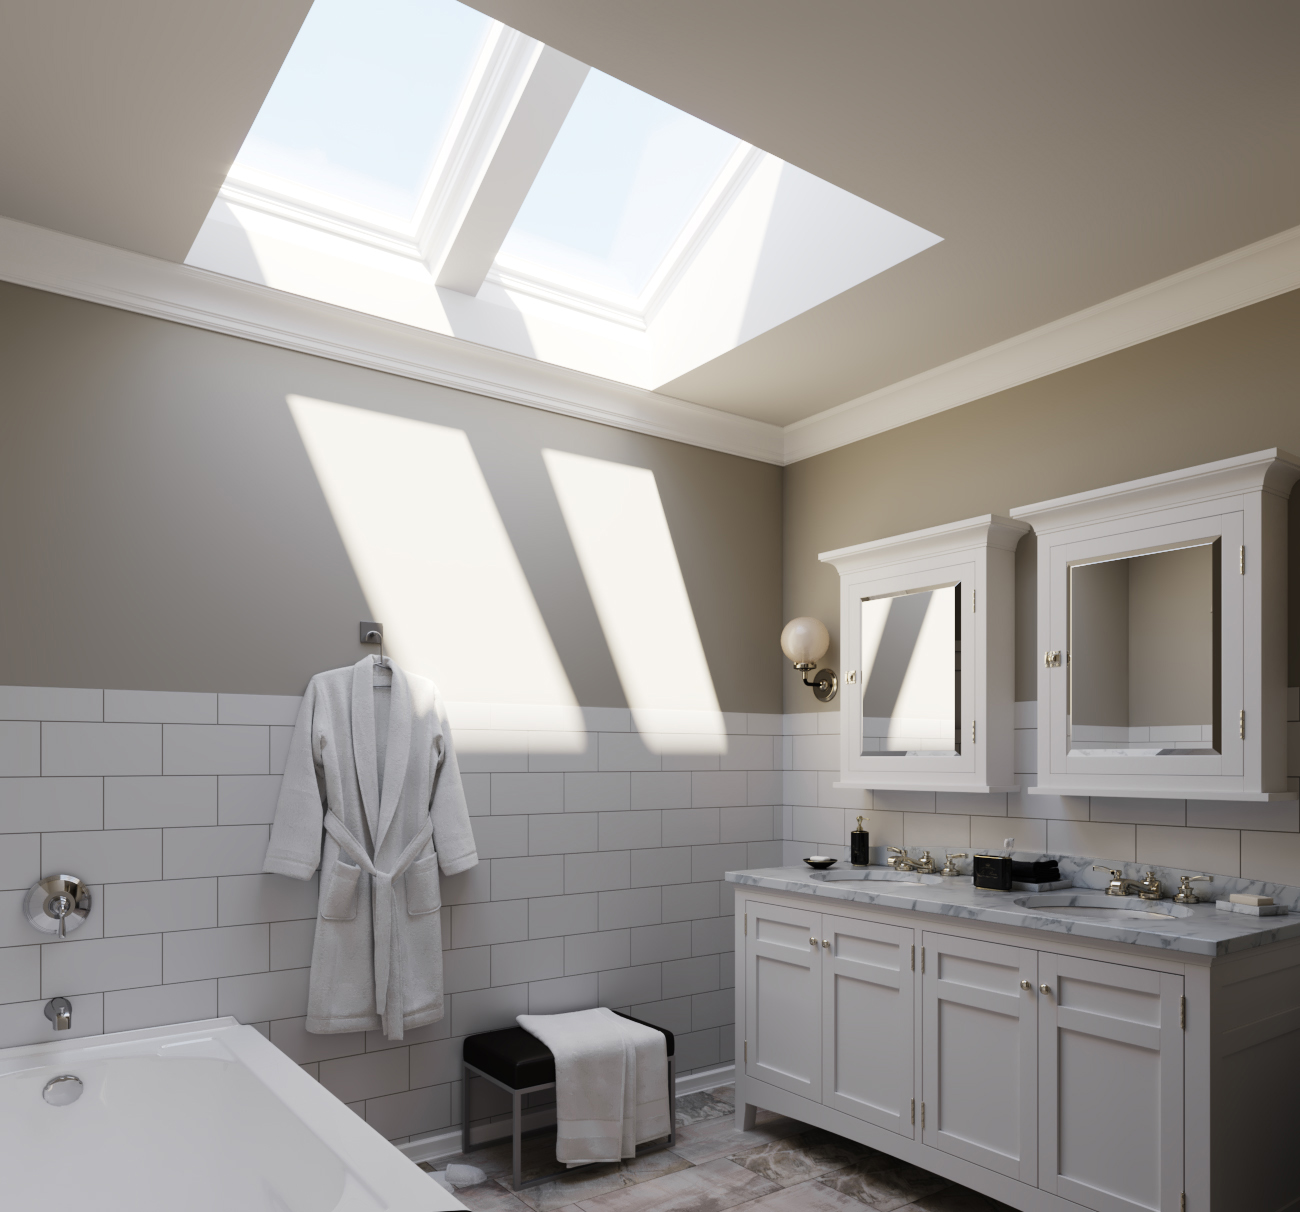 Bathroom Daylight